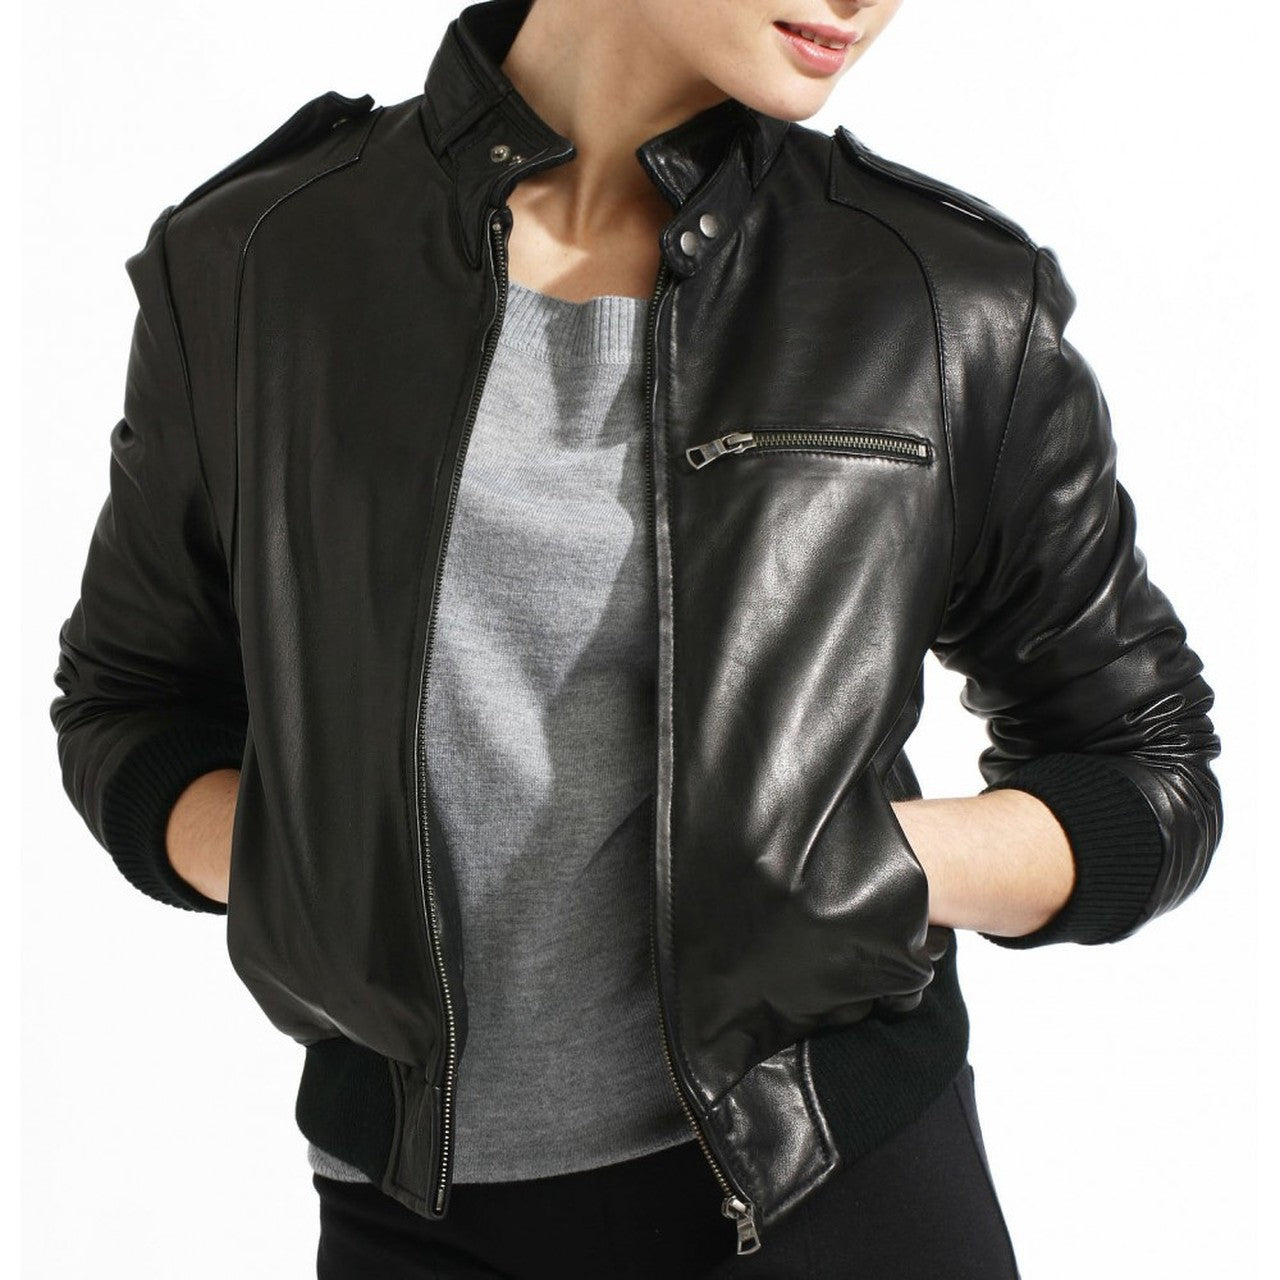 Stylish Bomber Leather Jacket for Women - Women Leather Jacket - Leather Jacket